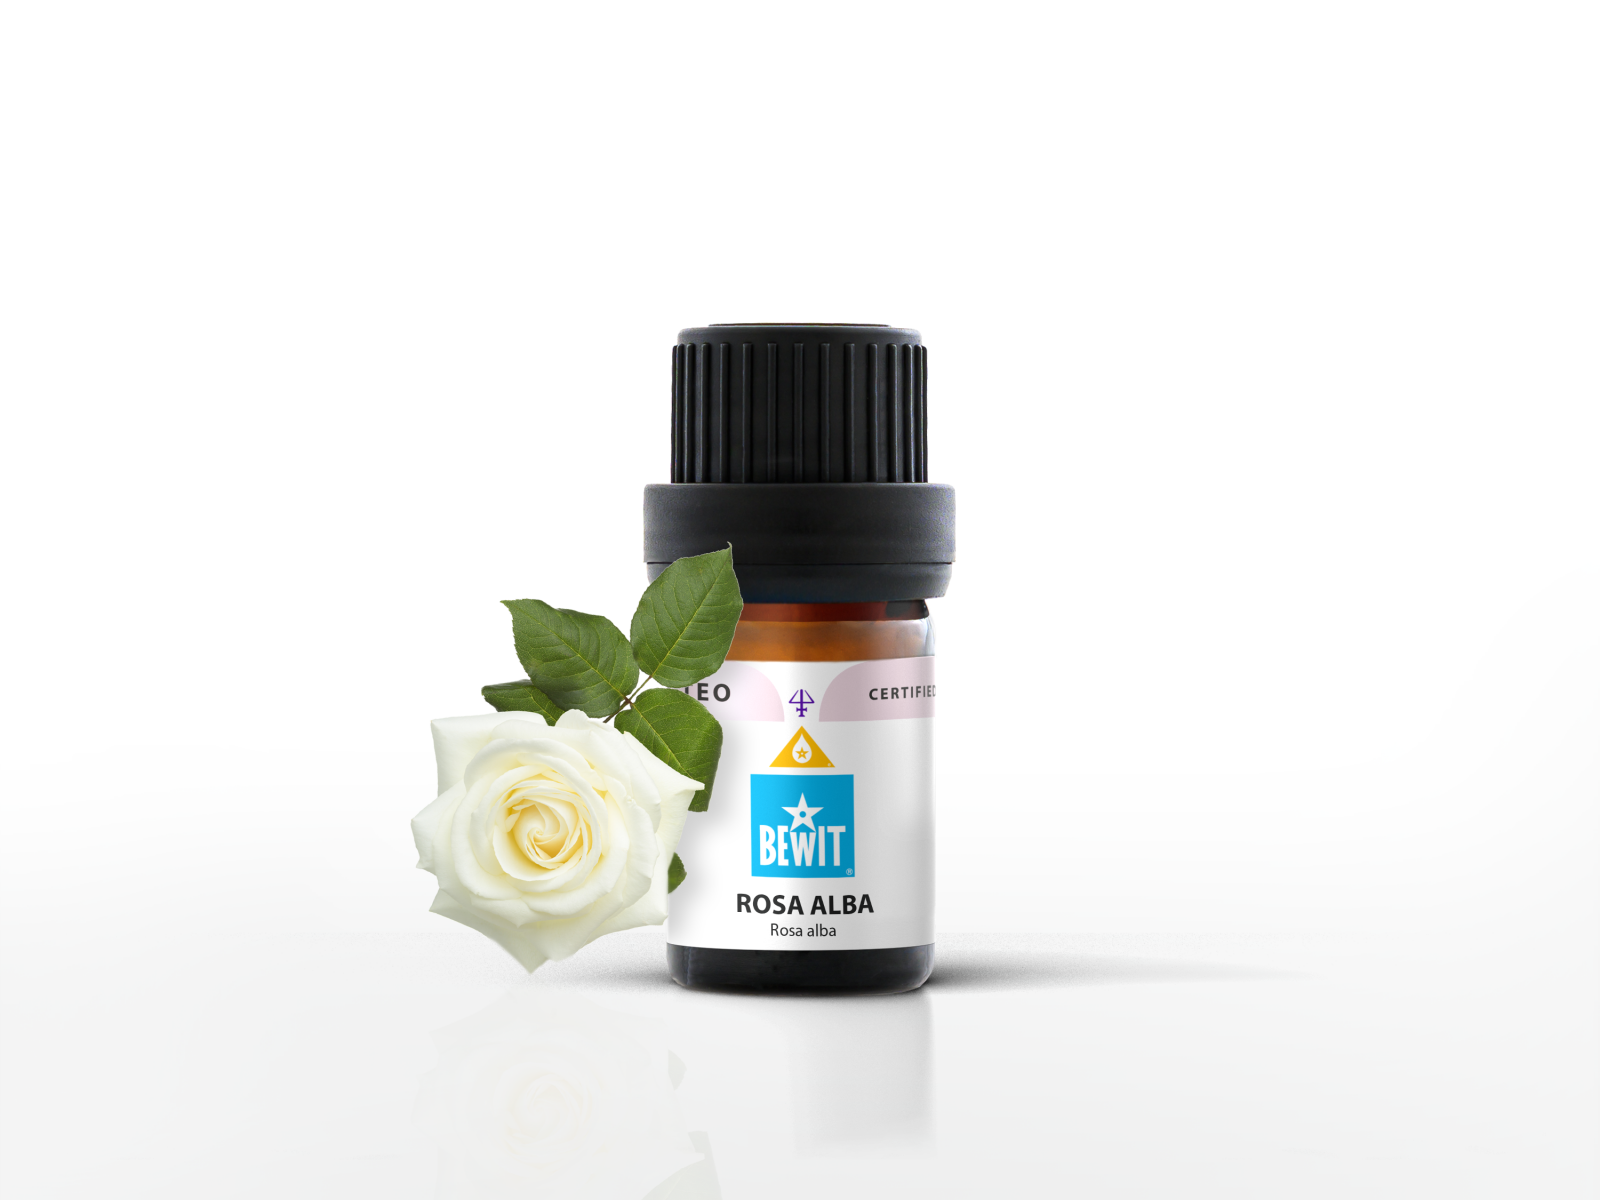 Rose alba in carrier oil